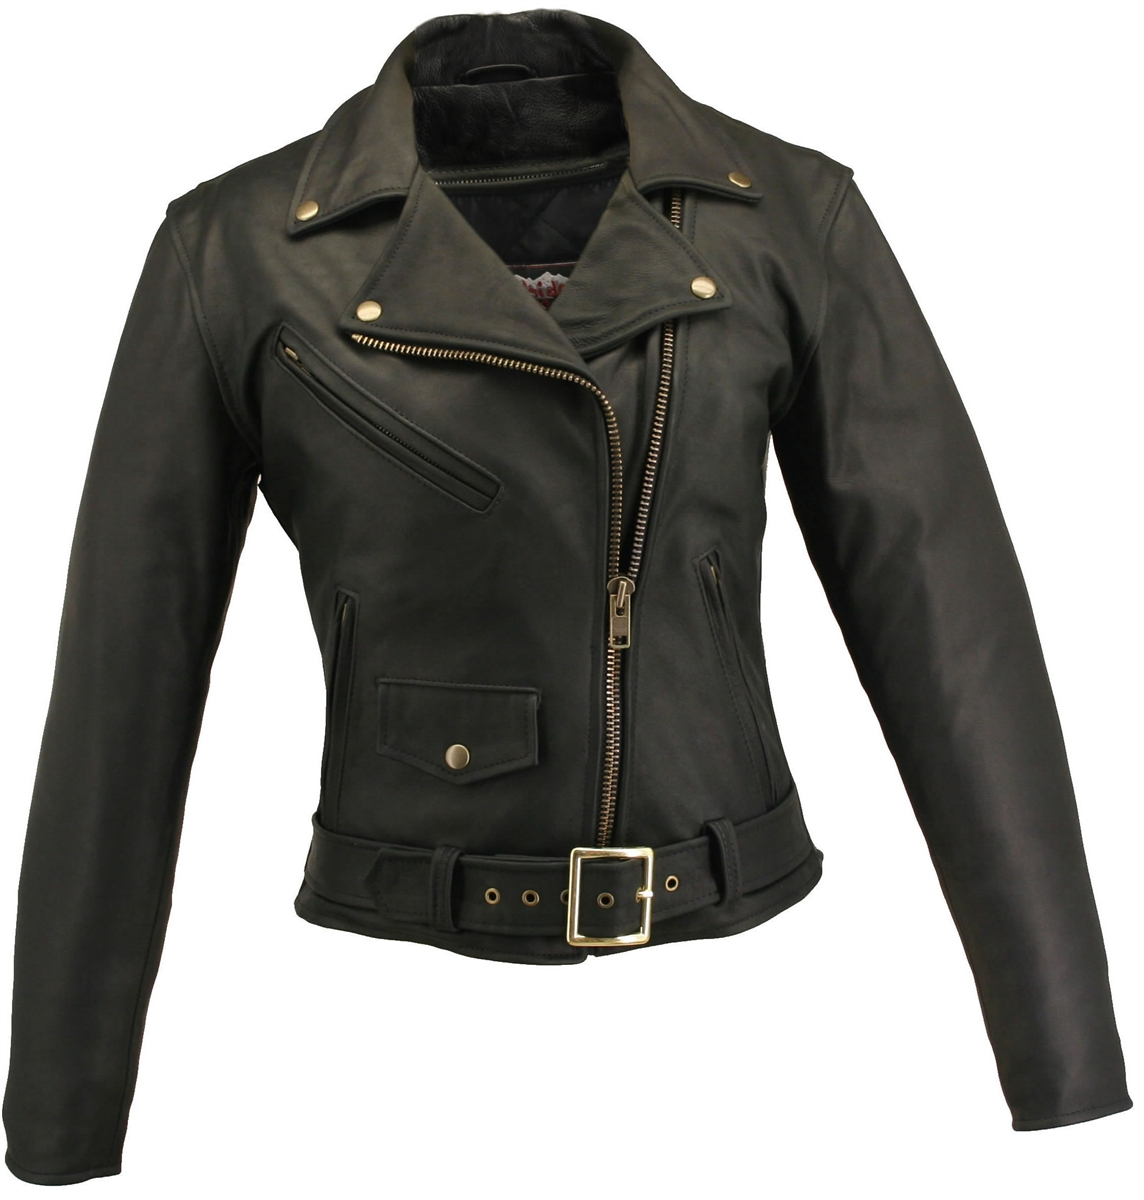 Women's Classic Biker Jacket. Classic look, but tough on the road and off. With upgrade features adds comfort and protection to an already timeless jacket. Features included 1.2-1.4 mm (3-31/2 oz) Soft, Supple, and black Cowhide Naked Leather. Action back